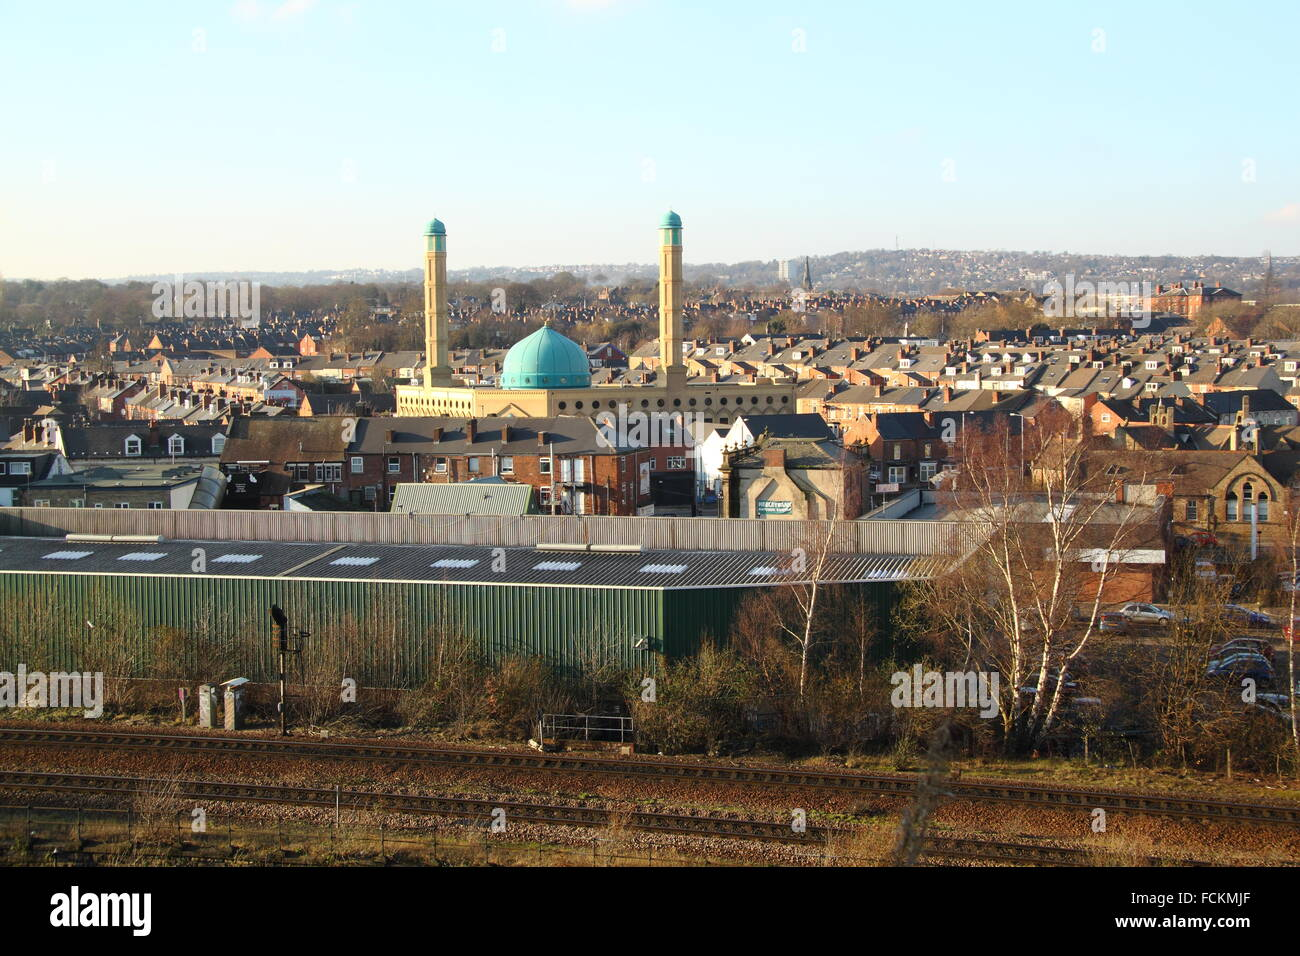 Sheffield view featuring the blue dome of the Madina Masjid mosque, Abbeydale area housing, main rail line into - Stock Image